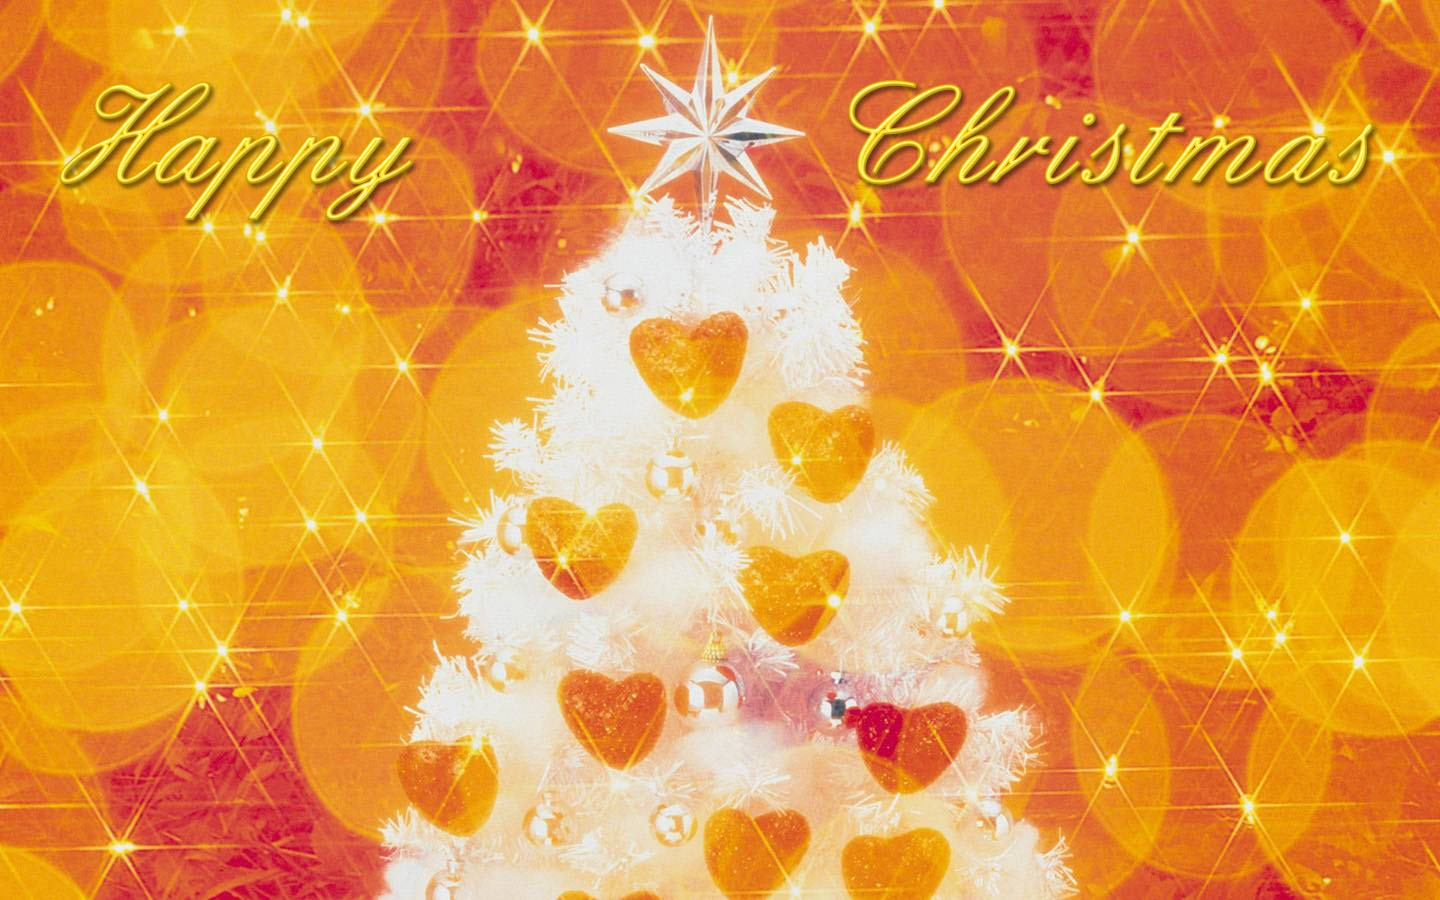 Christmas greetings cards online for free xmas photo greetings cards